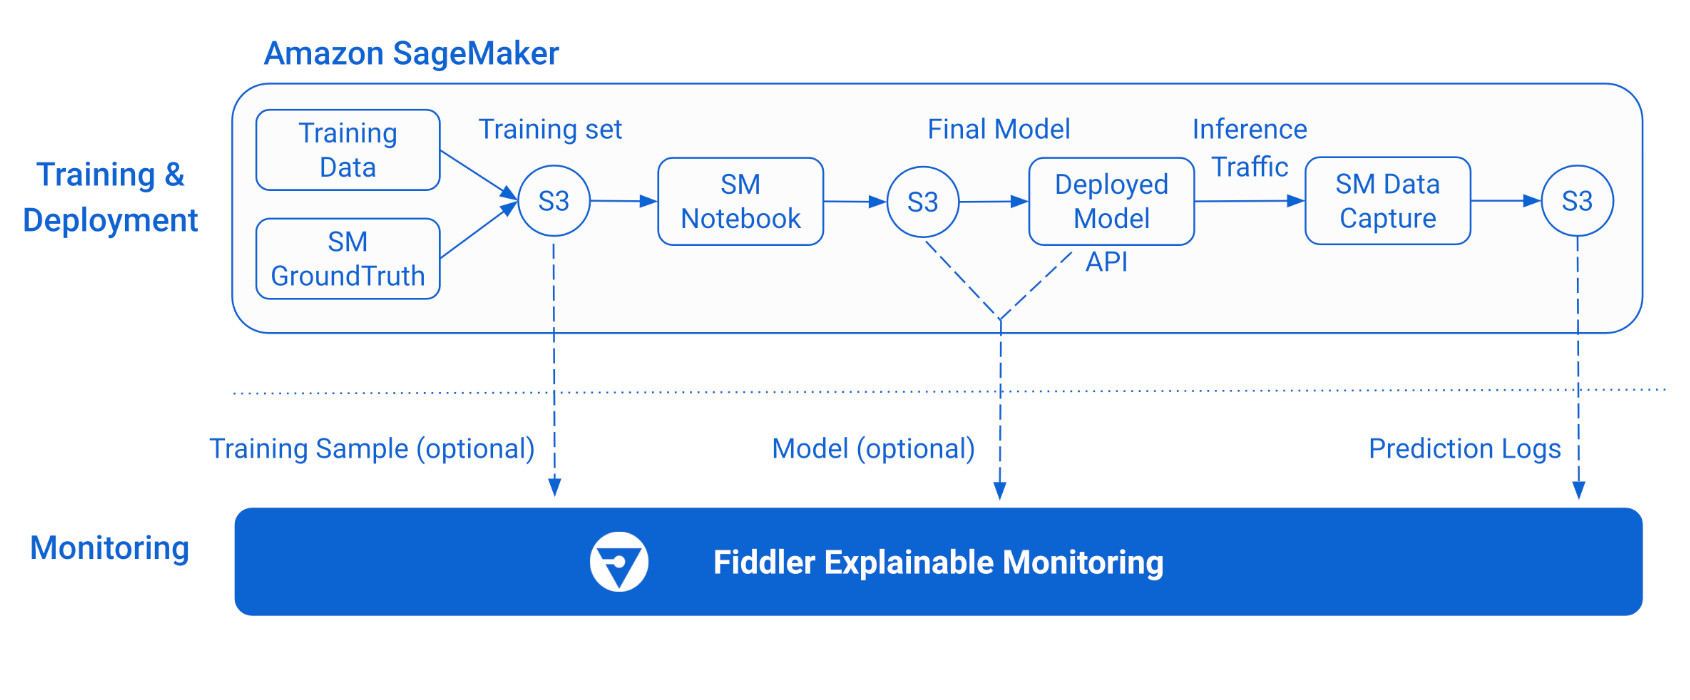 Complex architecture diagram of how Fiddler connects with SageMaker at different point to monitor, analyze, and control machine learning models